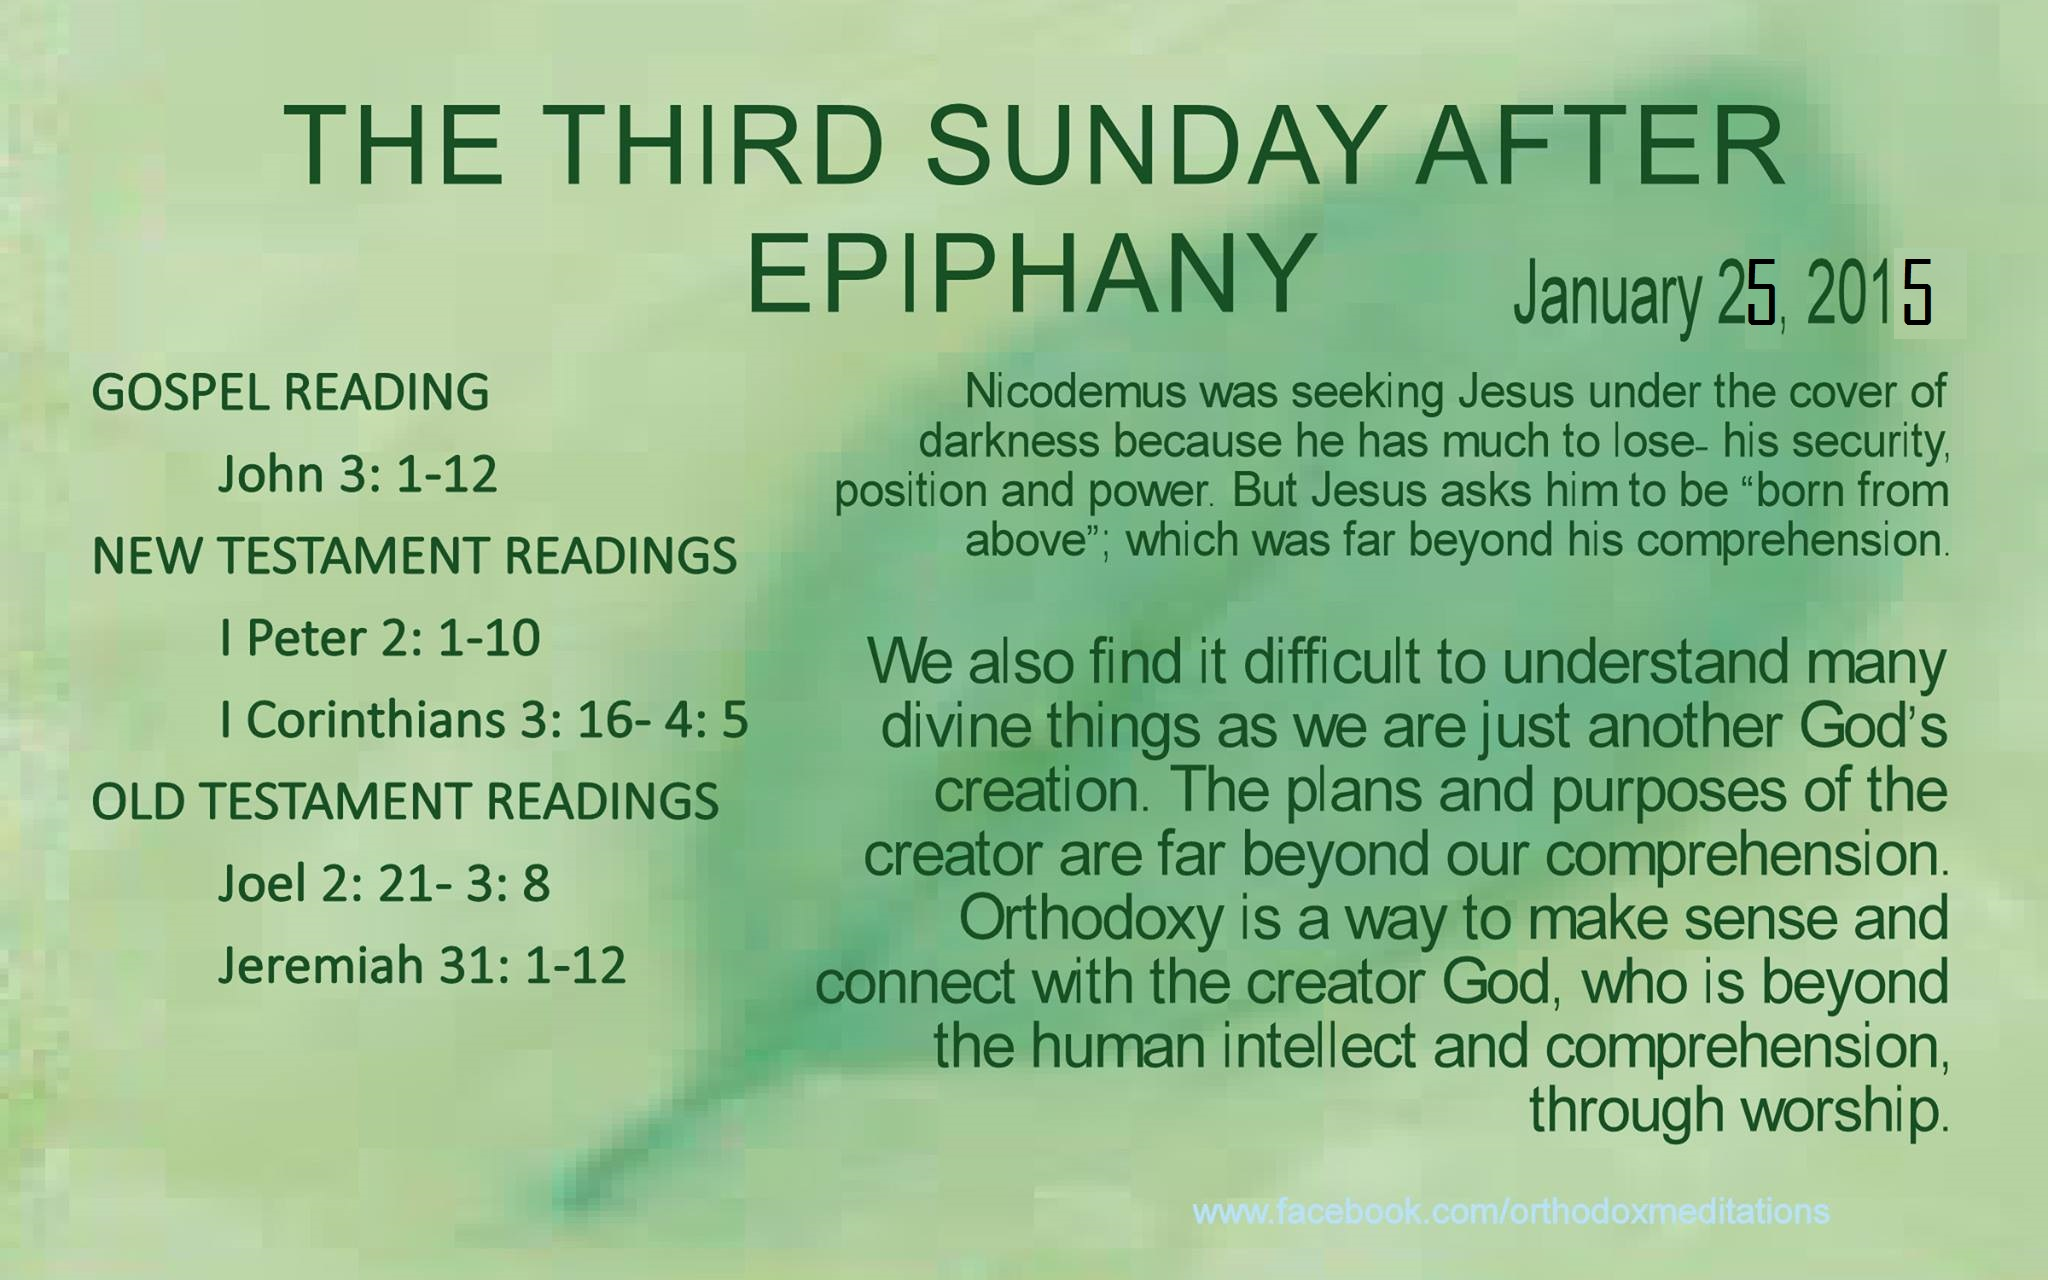 3rd sunday after ephiphany